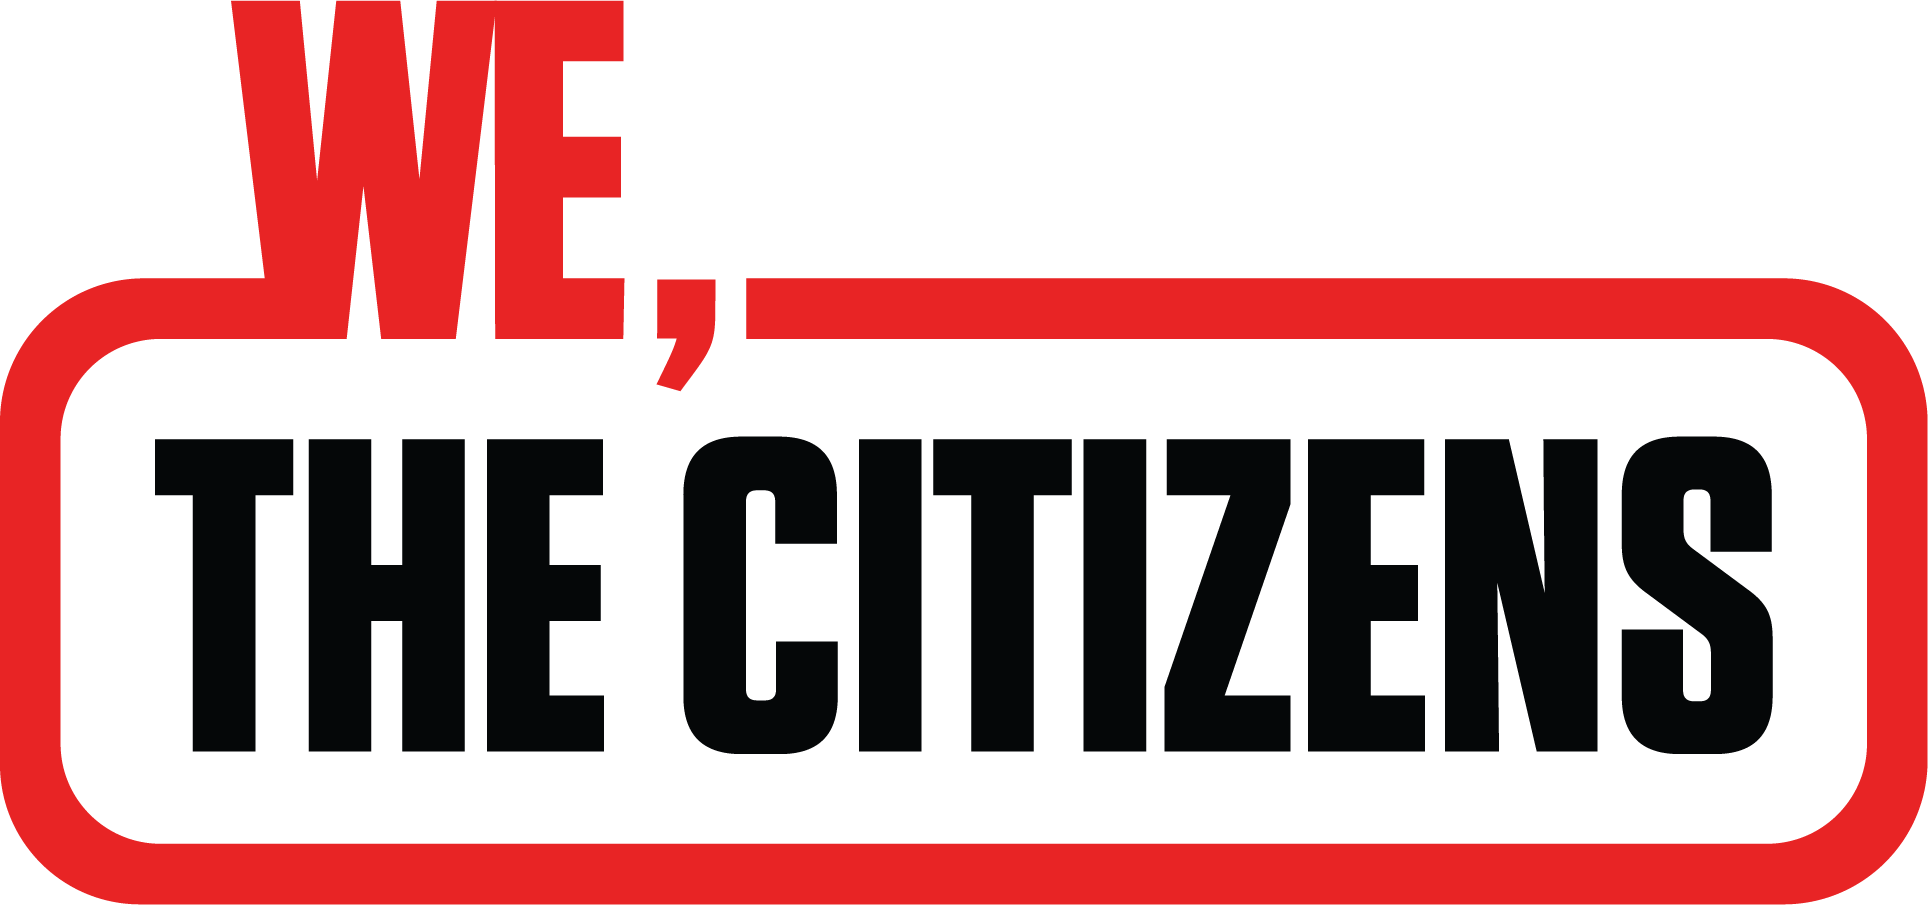 We, The Citizens